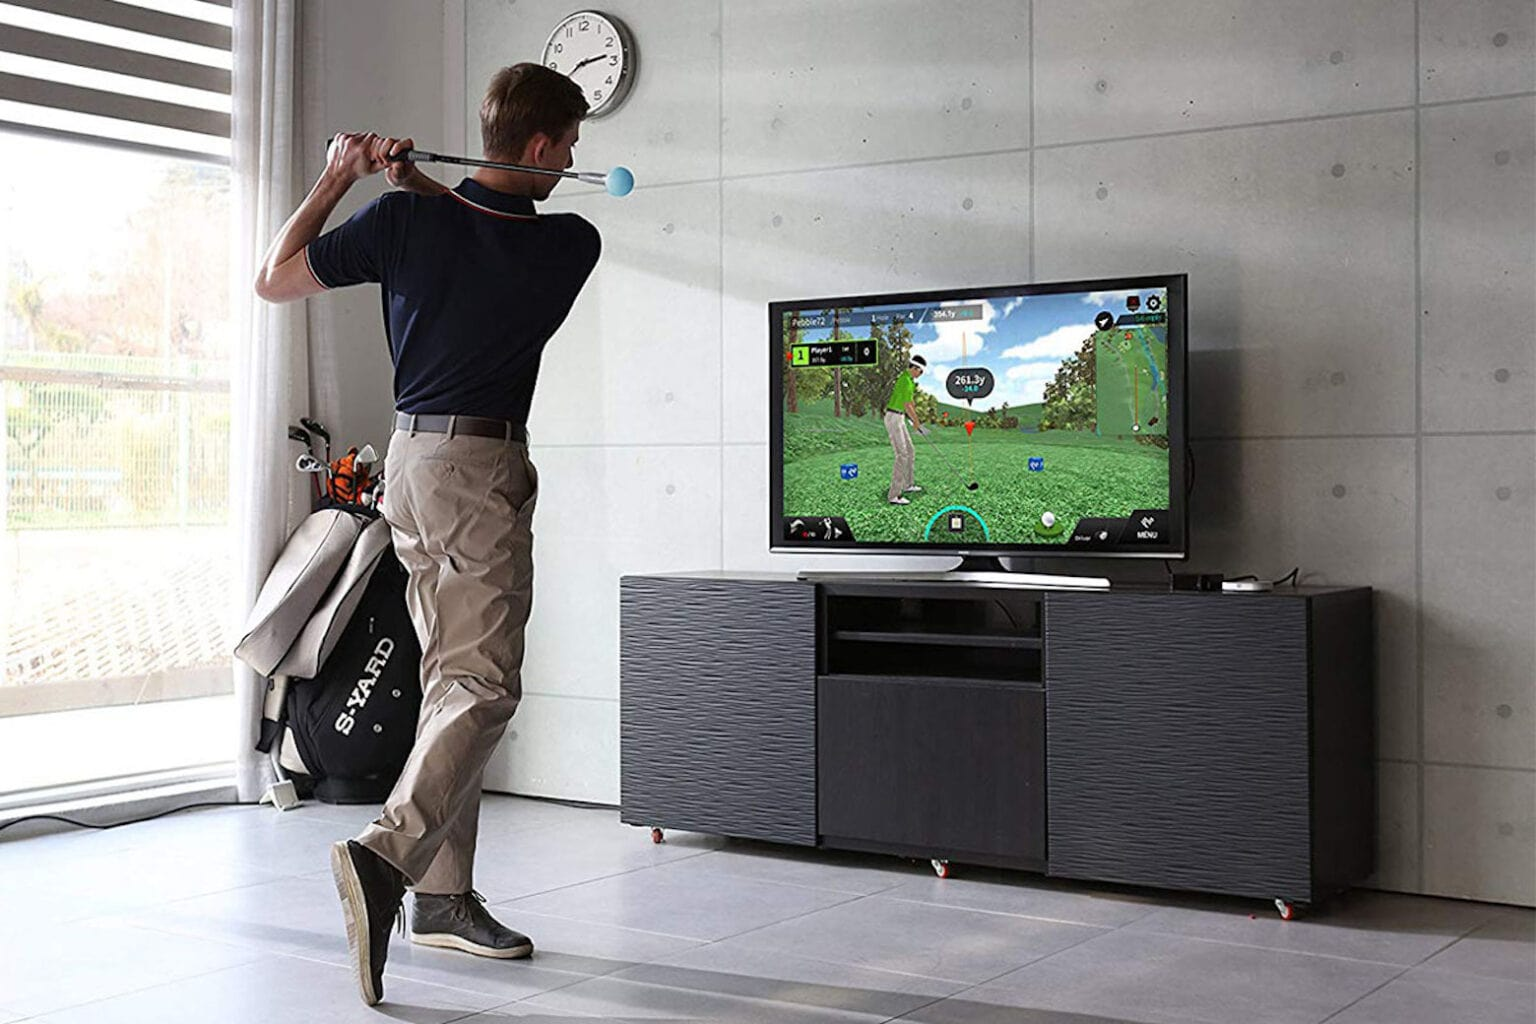 Up your game and lower your handicap with this entertaining golf simulator.